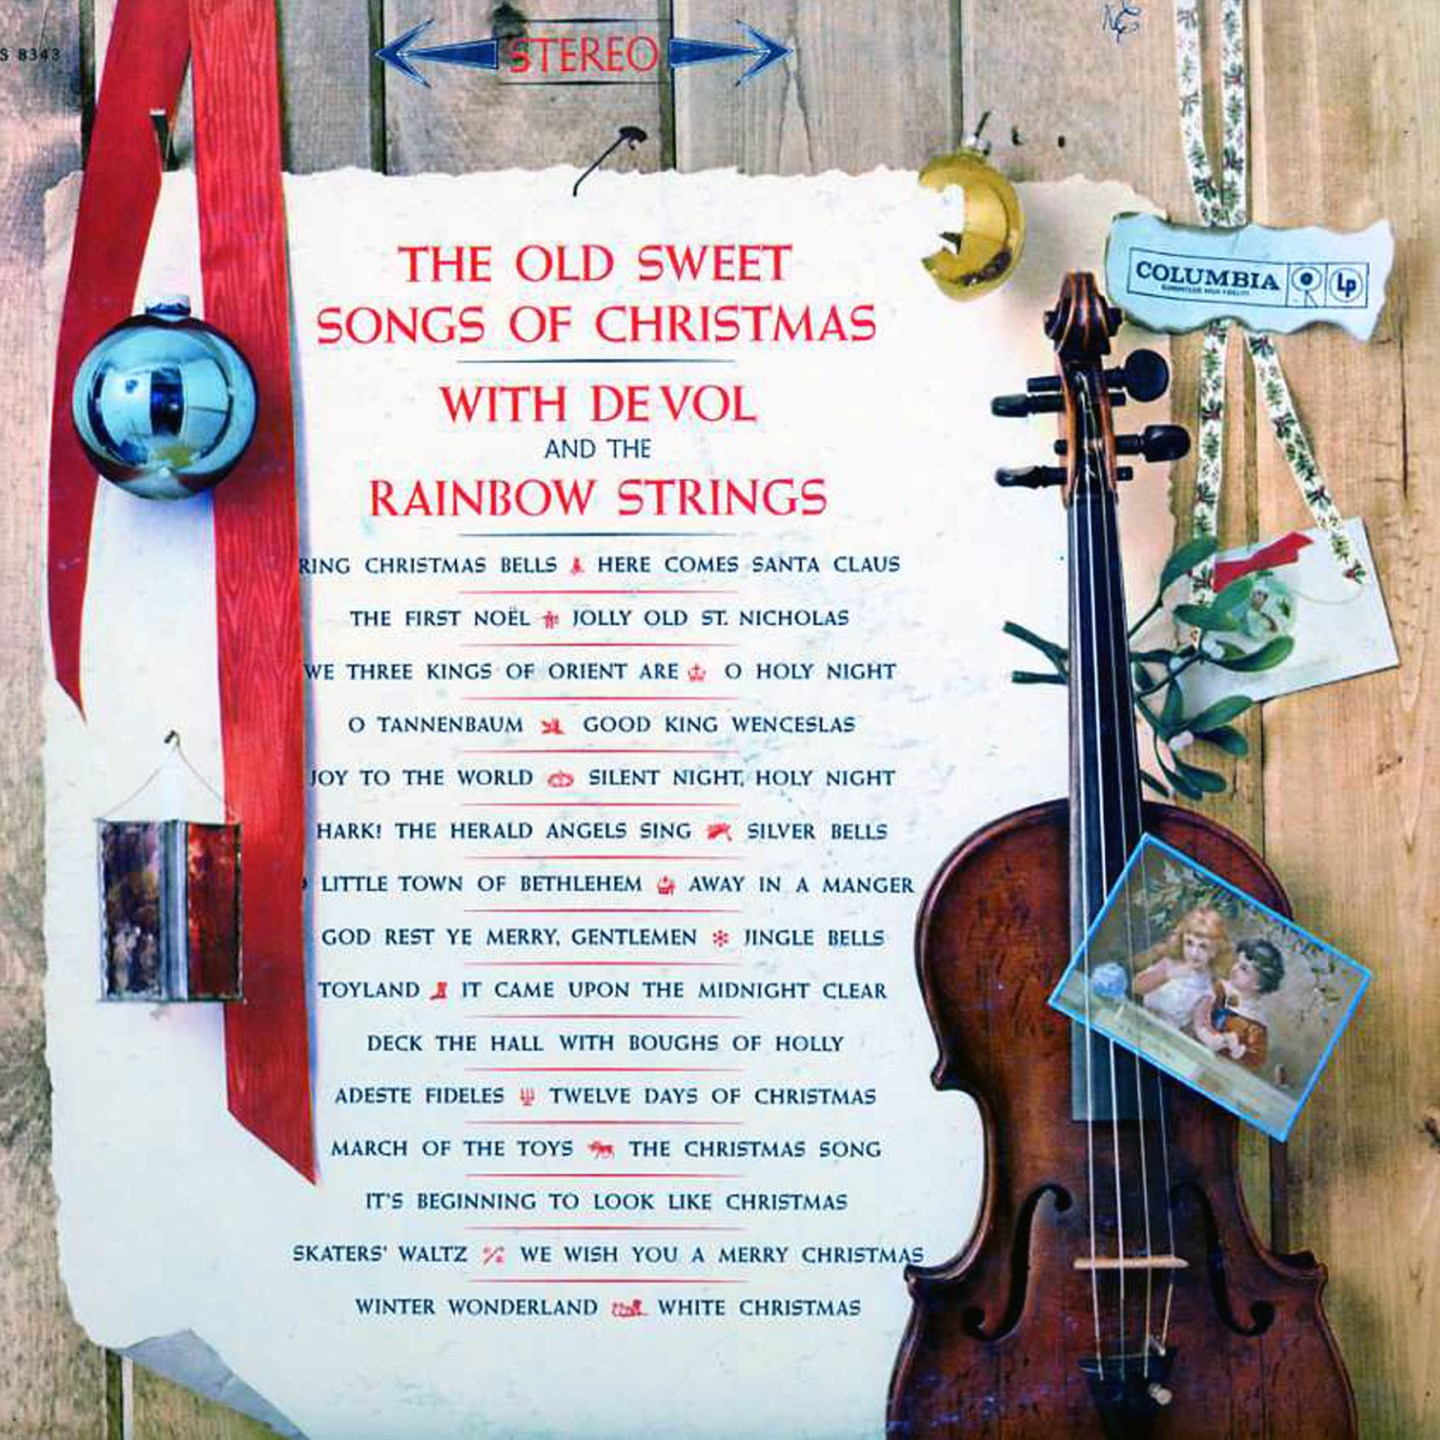 The Old Sweet Songs of Christmas by Frank DeVol & the Rainbow Strings